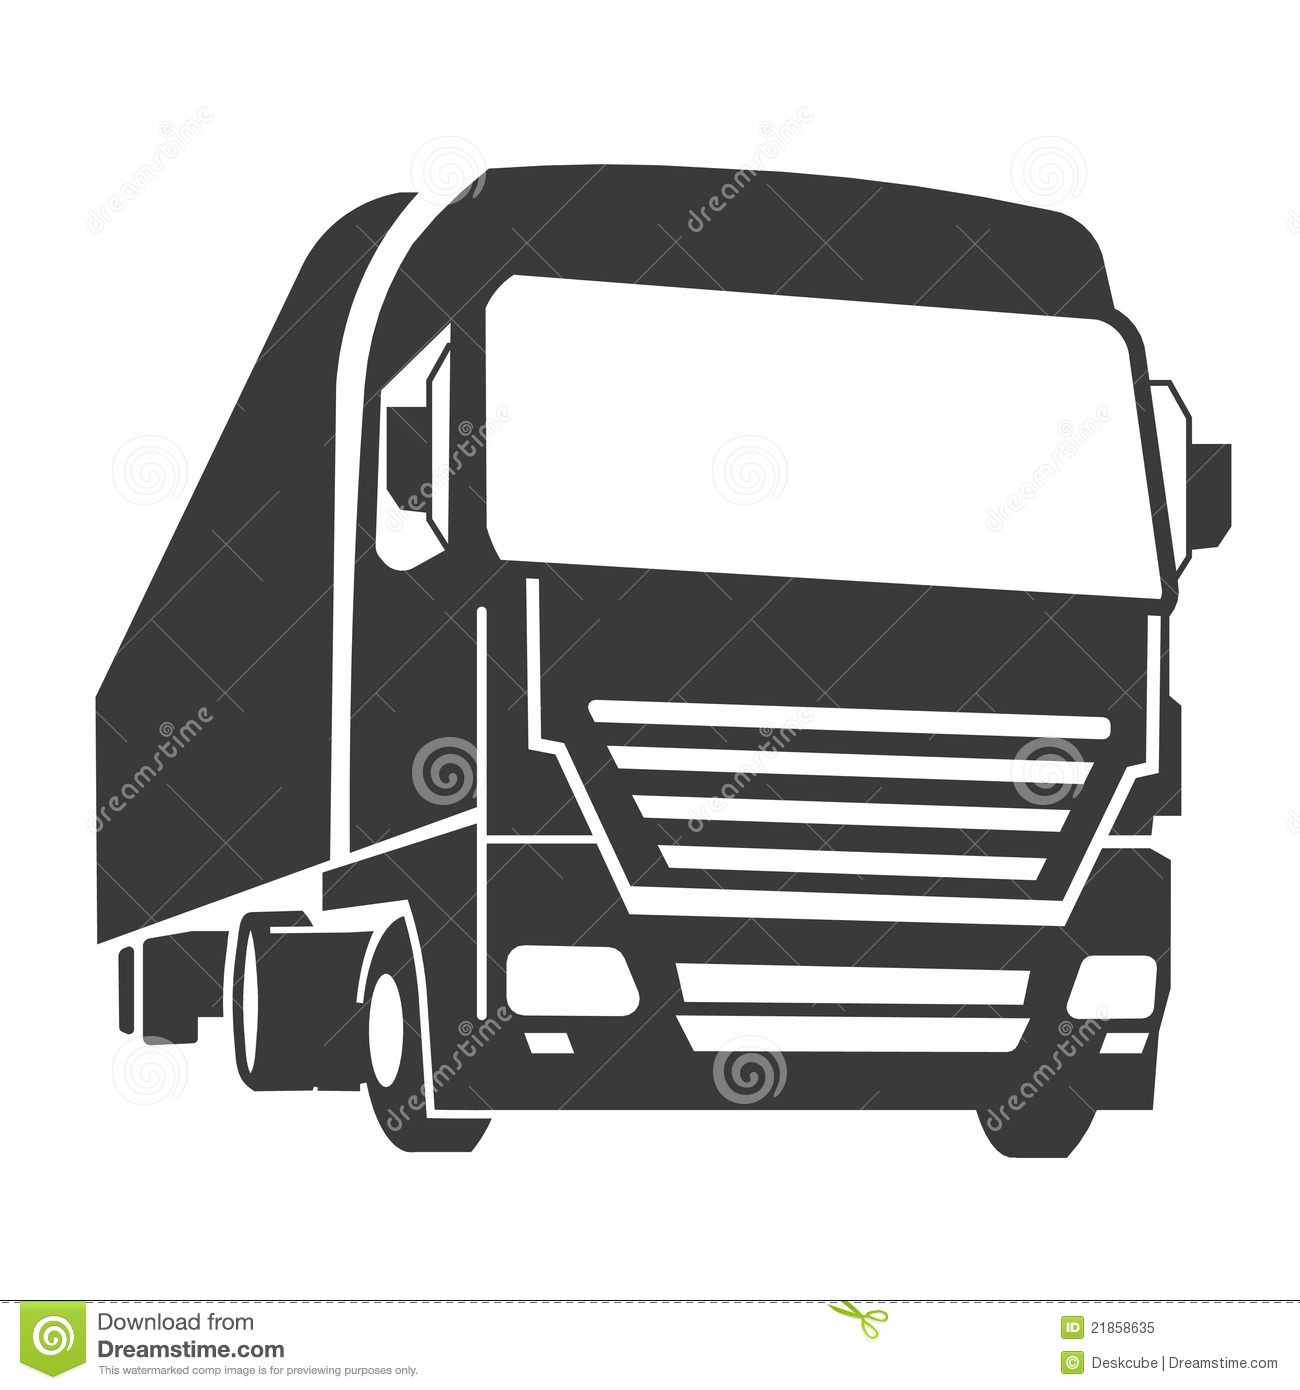 Fabulous Commercial truck stock vector. Illustration of cartoon - 21858635 QL37